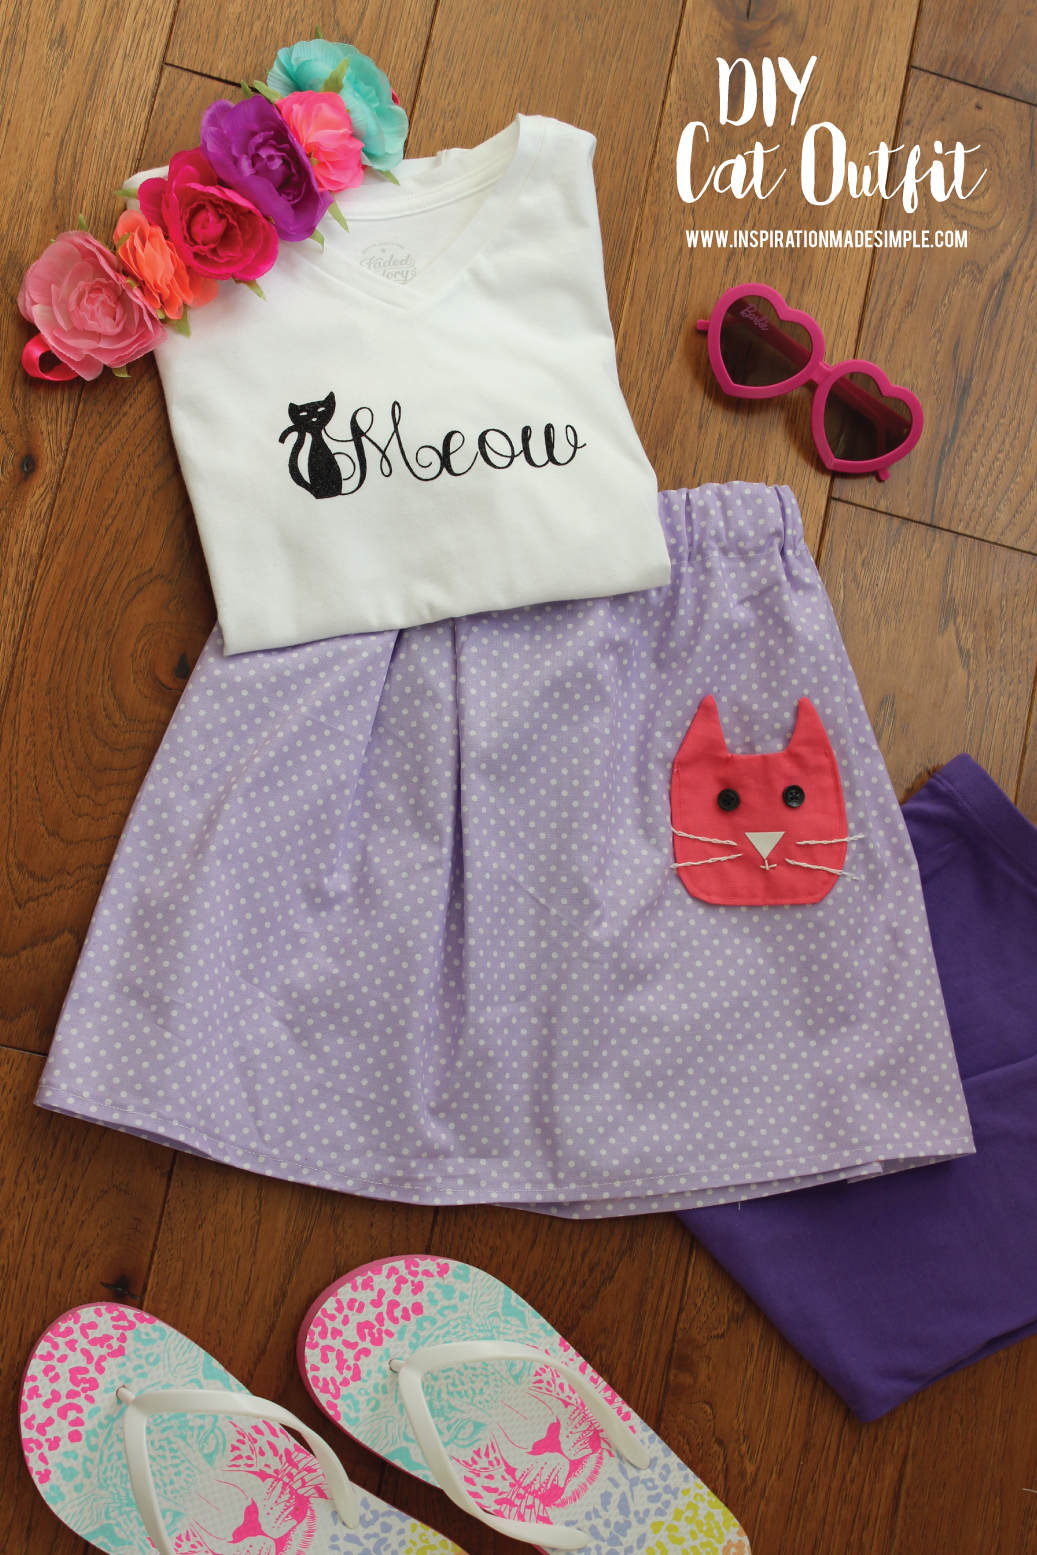 DIY Kitty Outfit for Little Girls